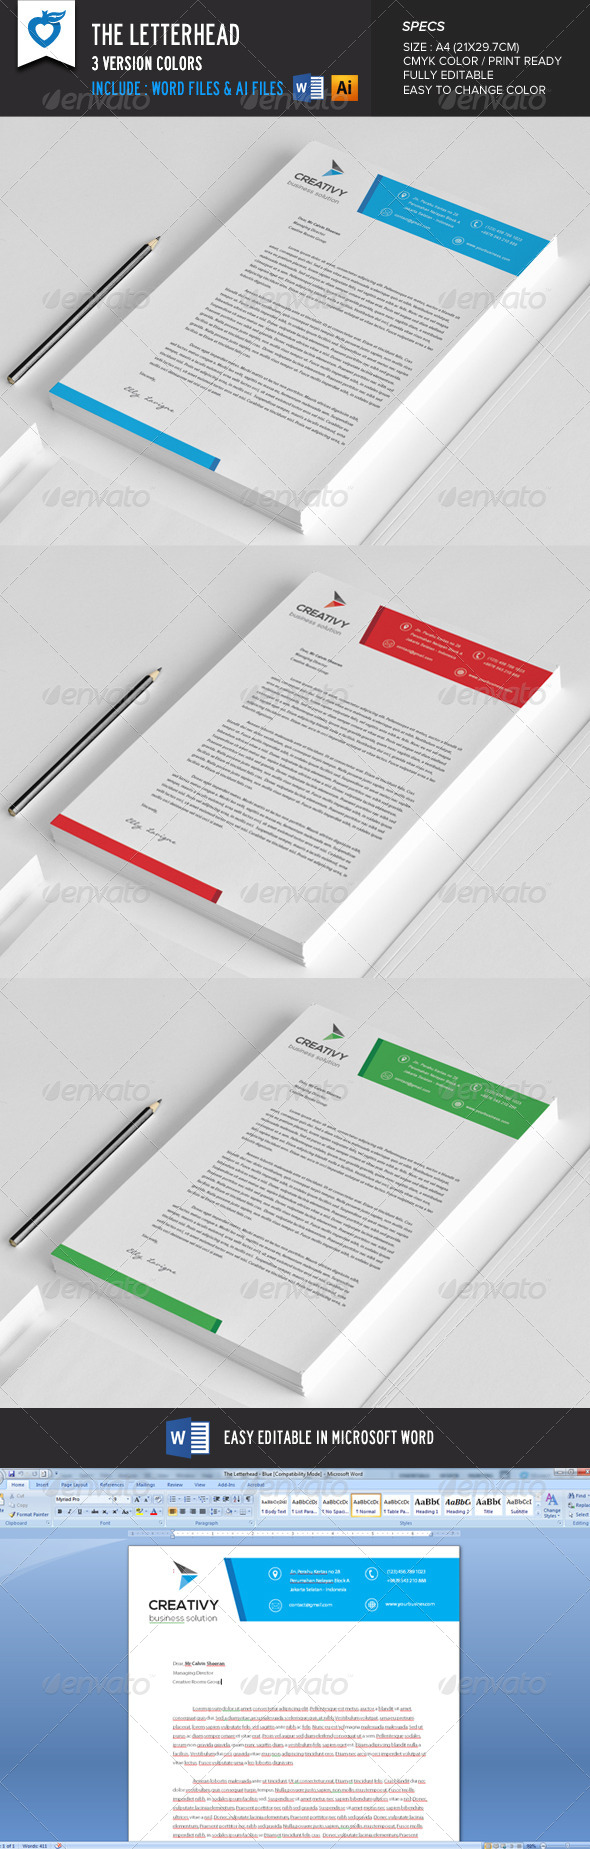 GraphicRiver The Letterhead 8621502